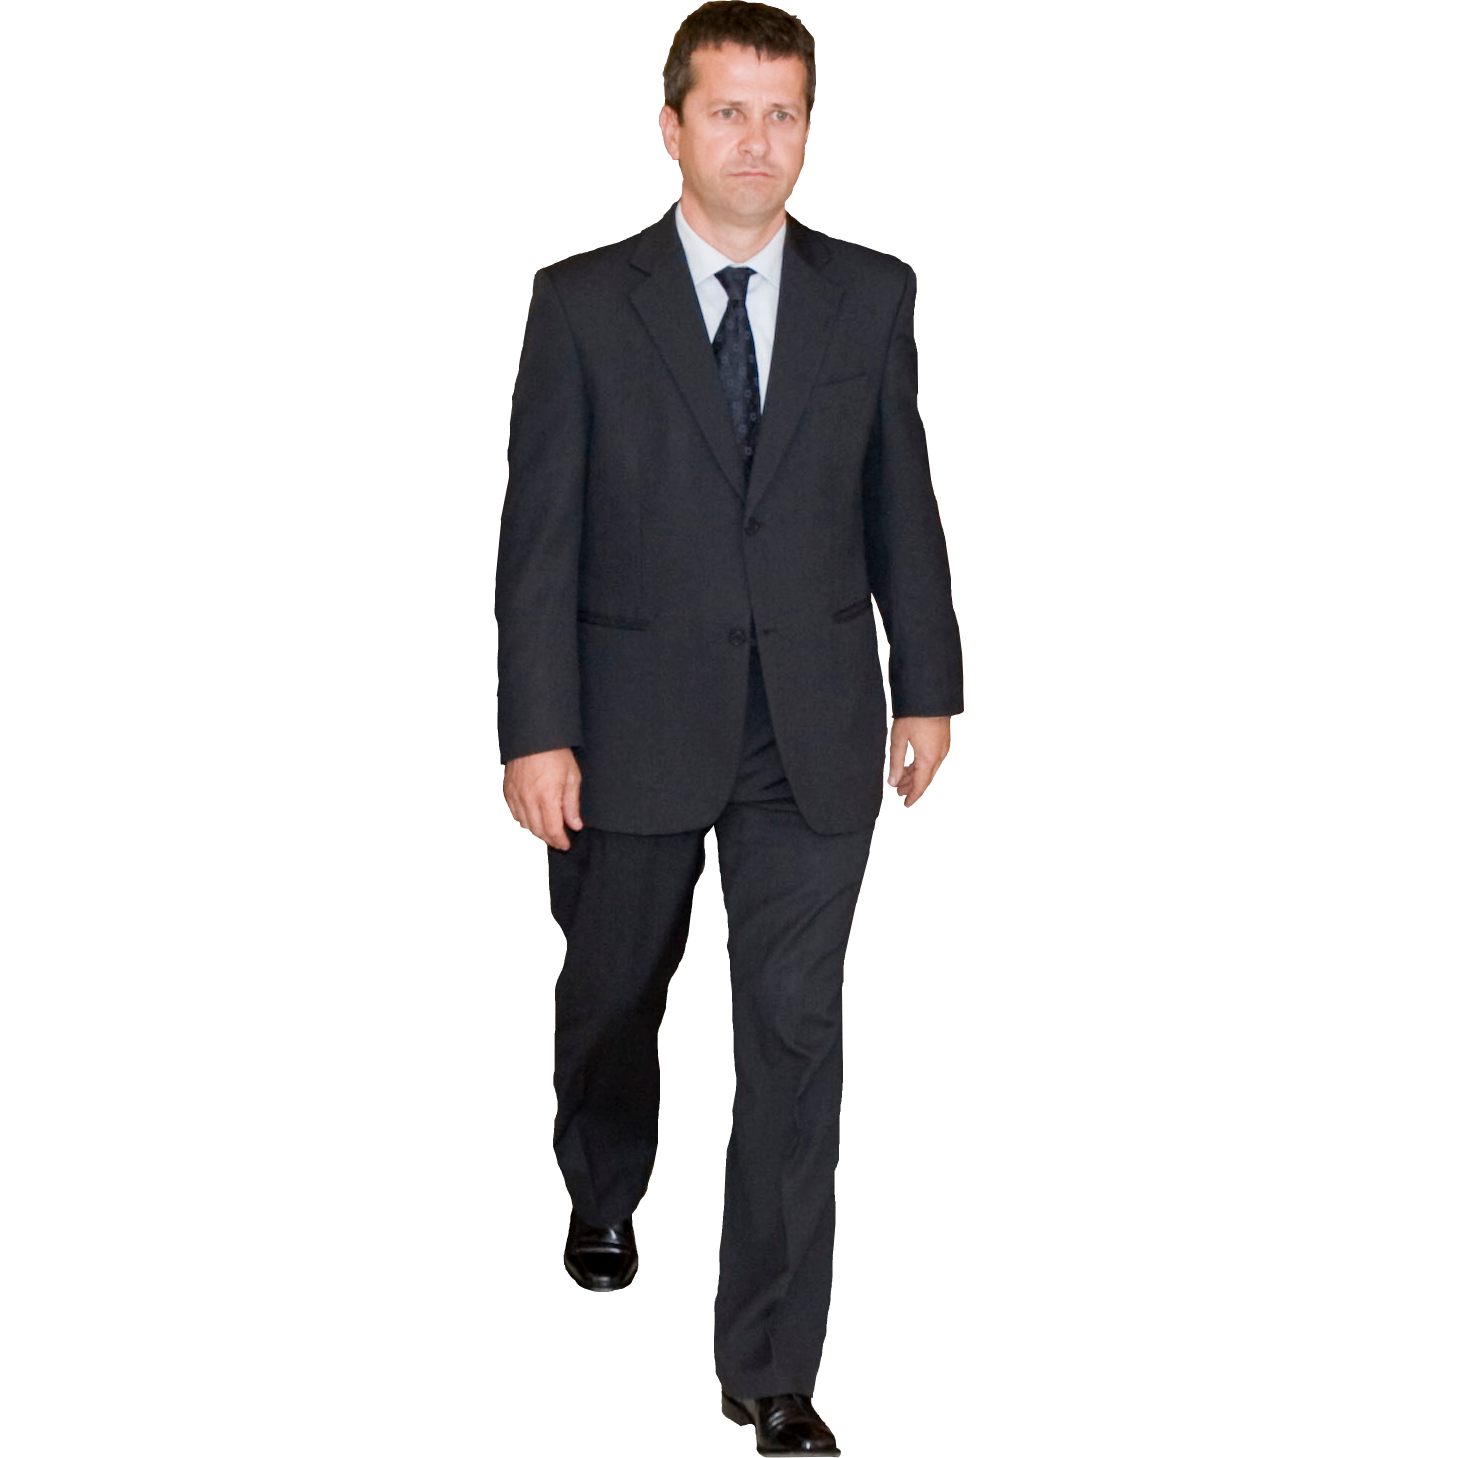 people in suits png